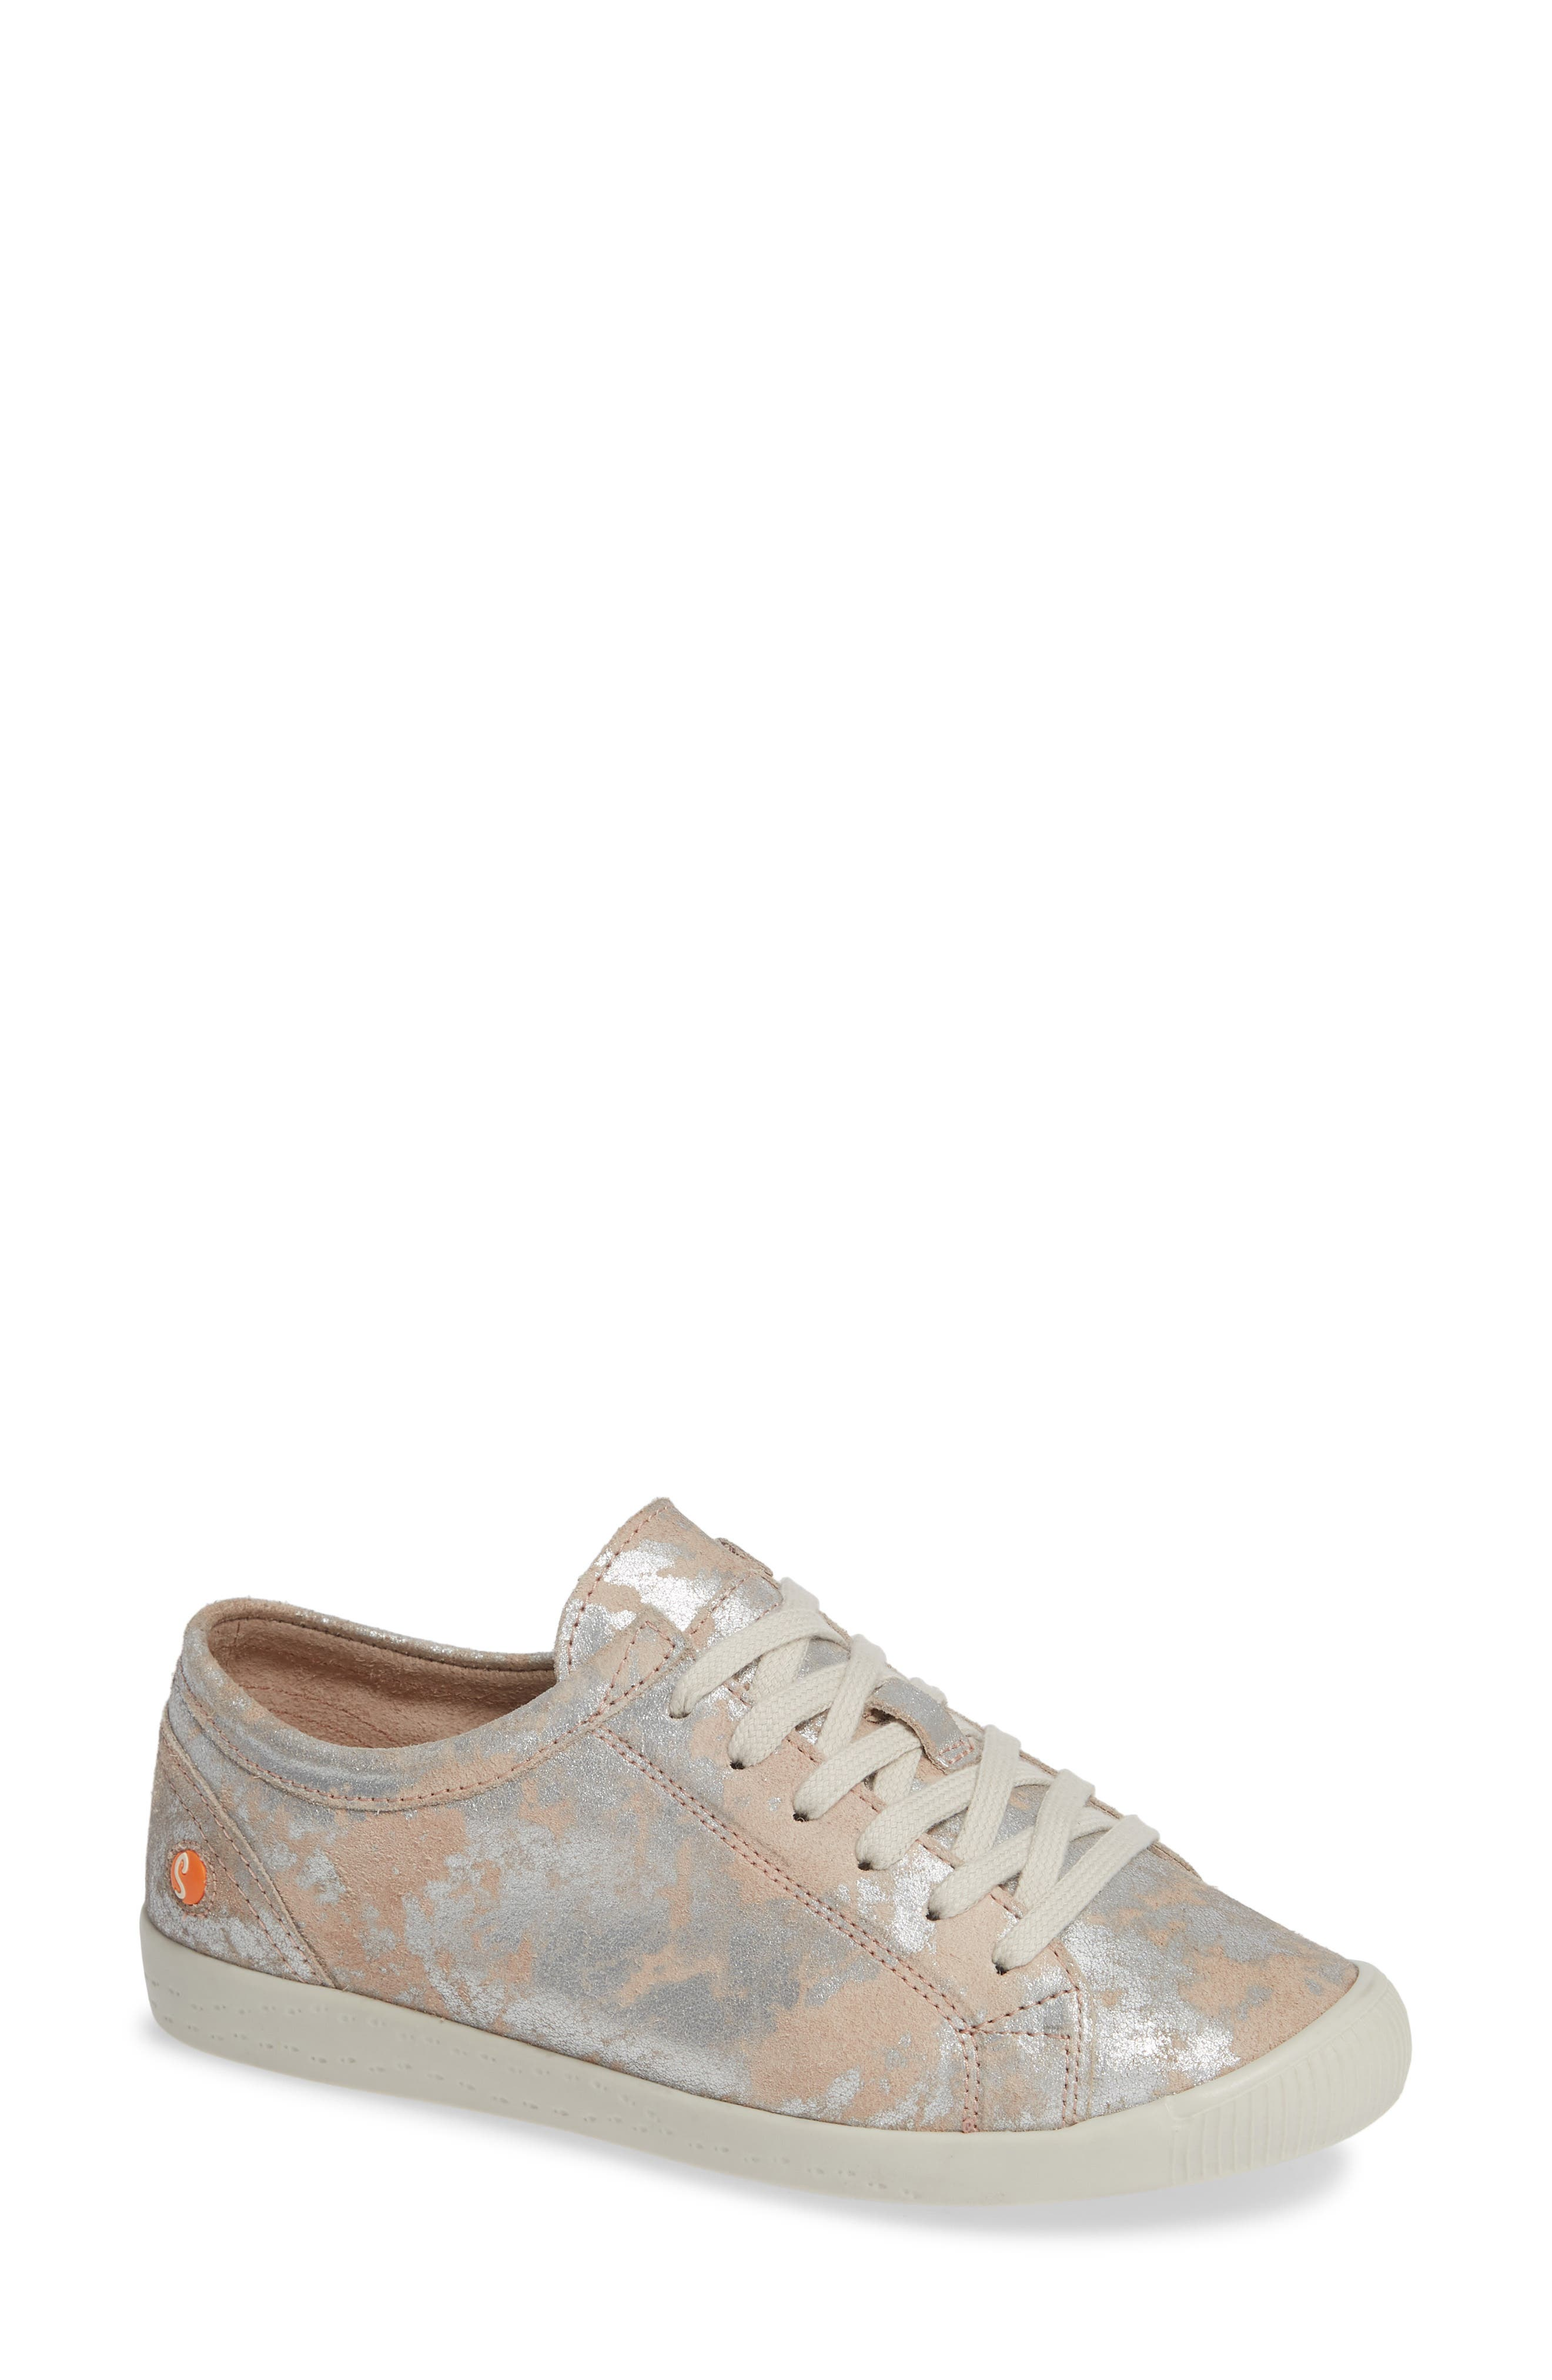 Isla Distressed Sneaker,                         Main,                         color, ROSE LEATHER